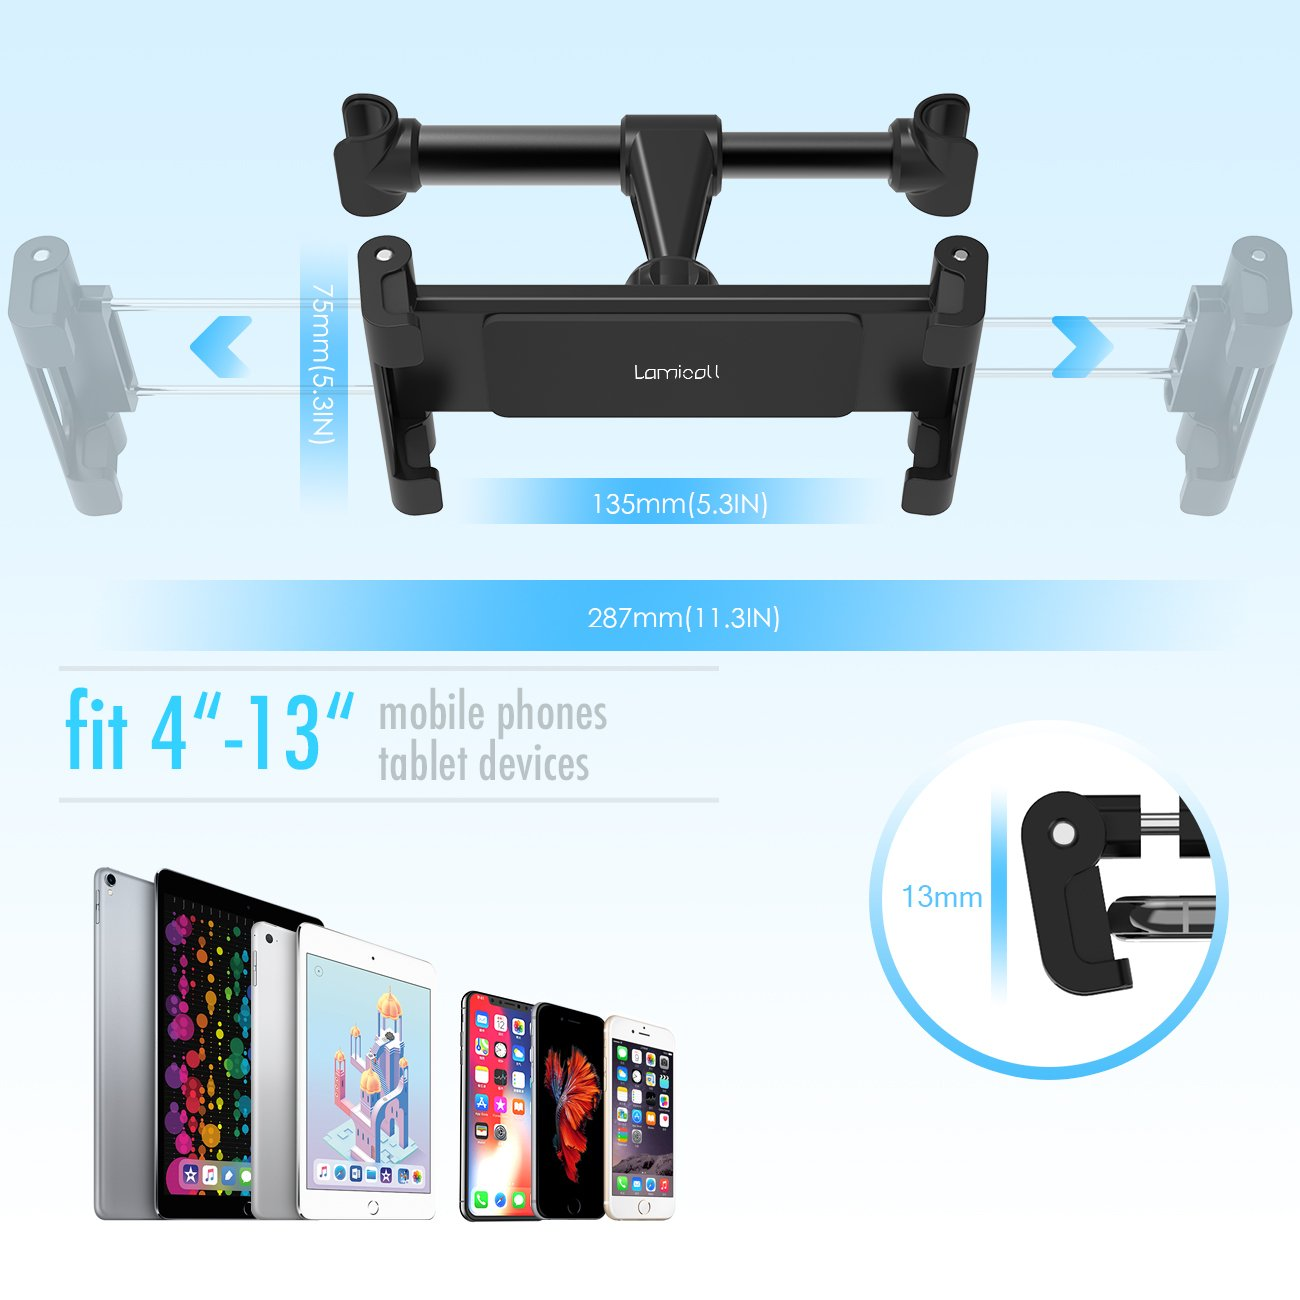 Car Tablet Headrest Mount, Lamicall Tablet Holder : Back seat Stand Cradle Compatible with 4.7~13 inch Like iPad 2017 Pro 9.7, 10.5, 12.9, Air Mini 2 3 4, Accessories, E-Reader, Smartphones - Black by Lamicall (Image #4)